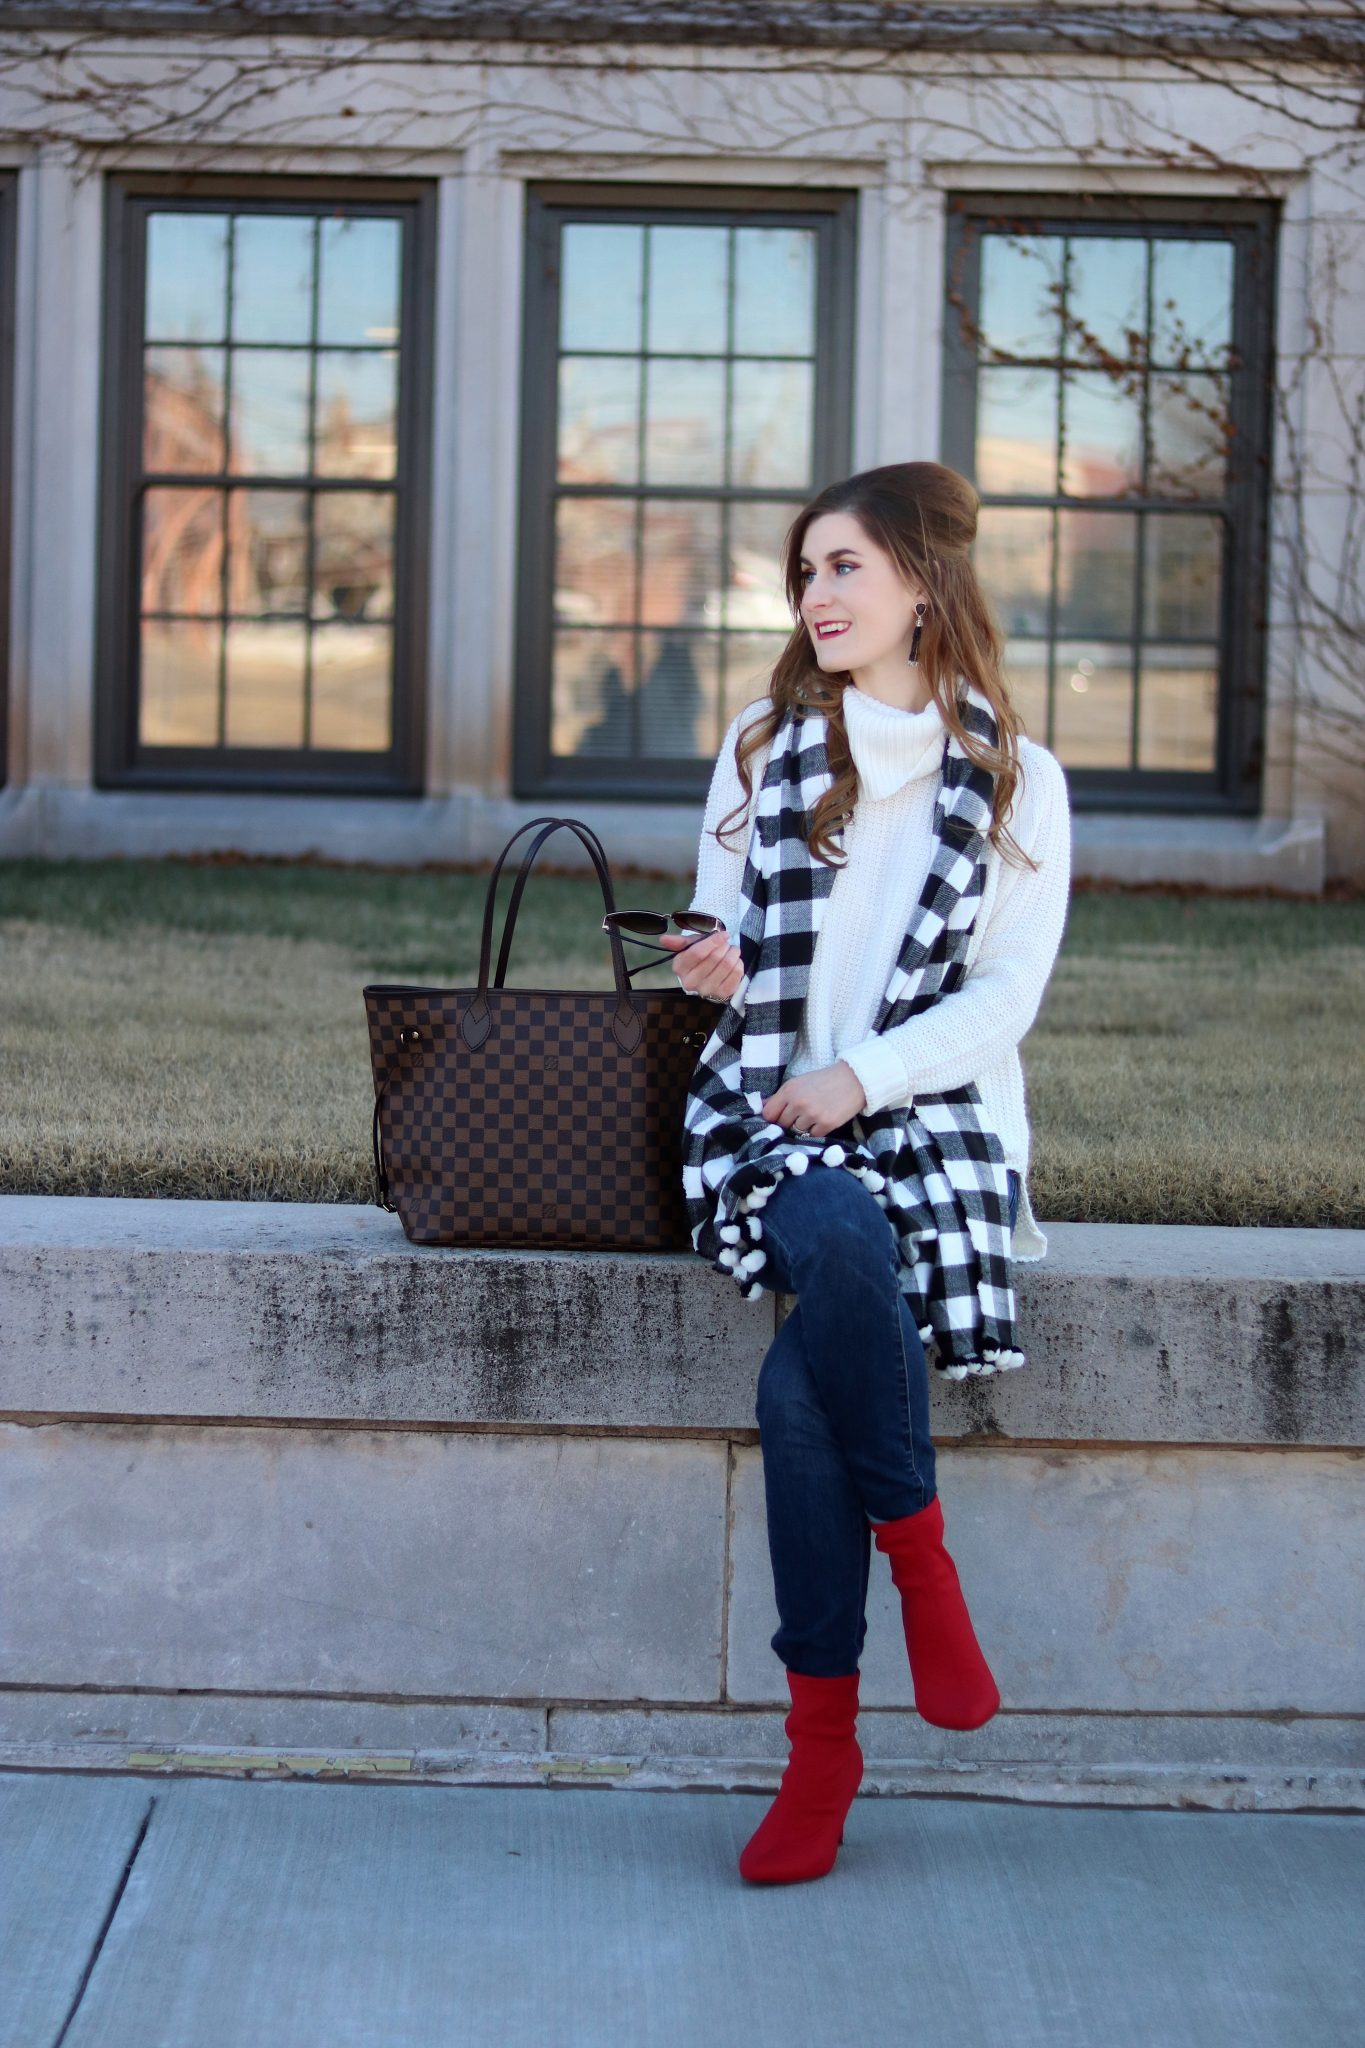 How To Transition A Sweater Into Spring